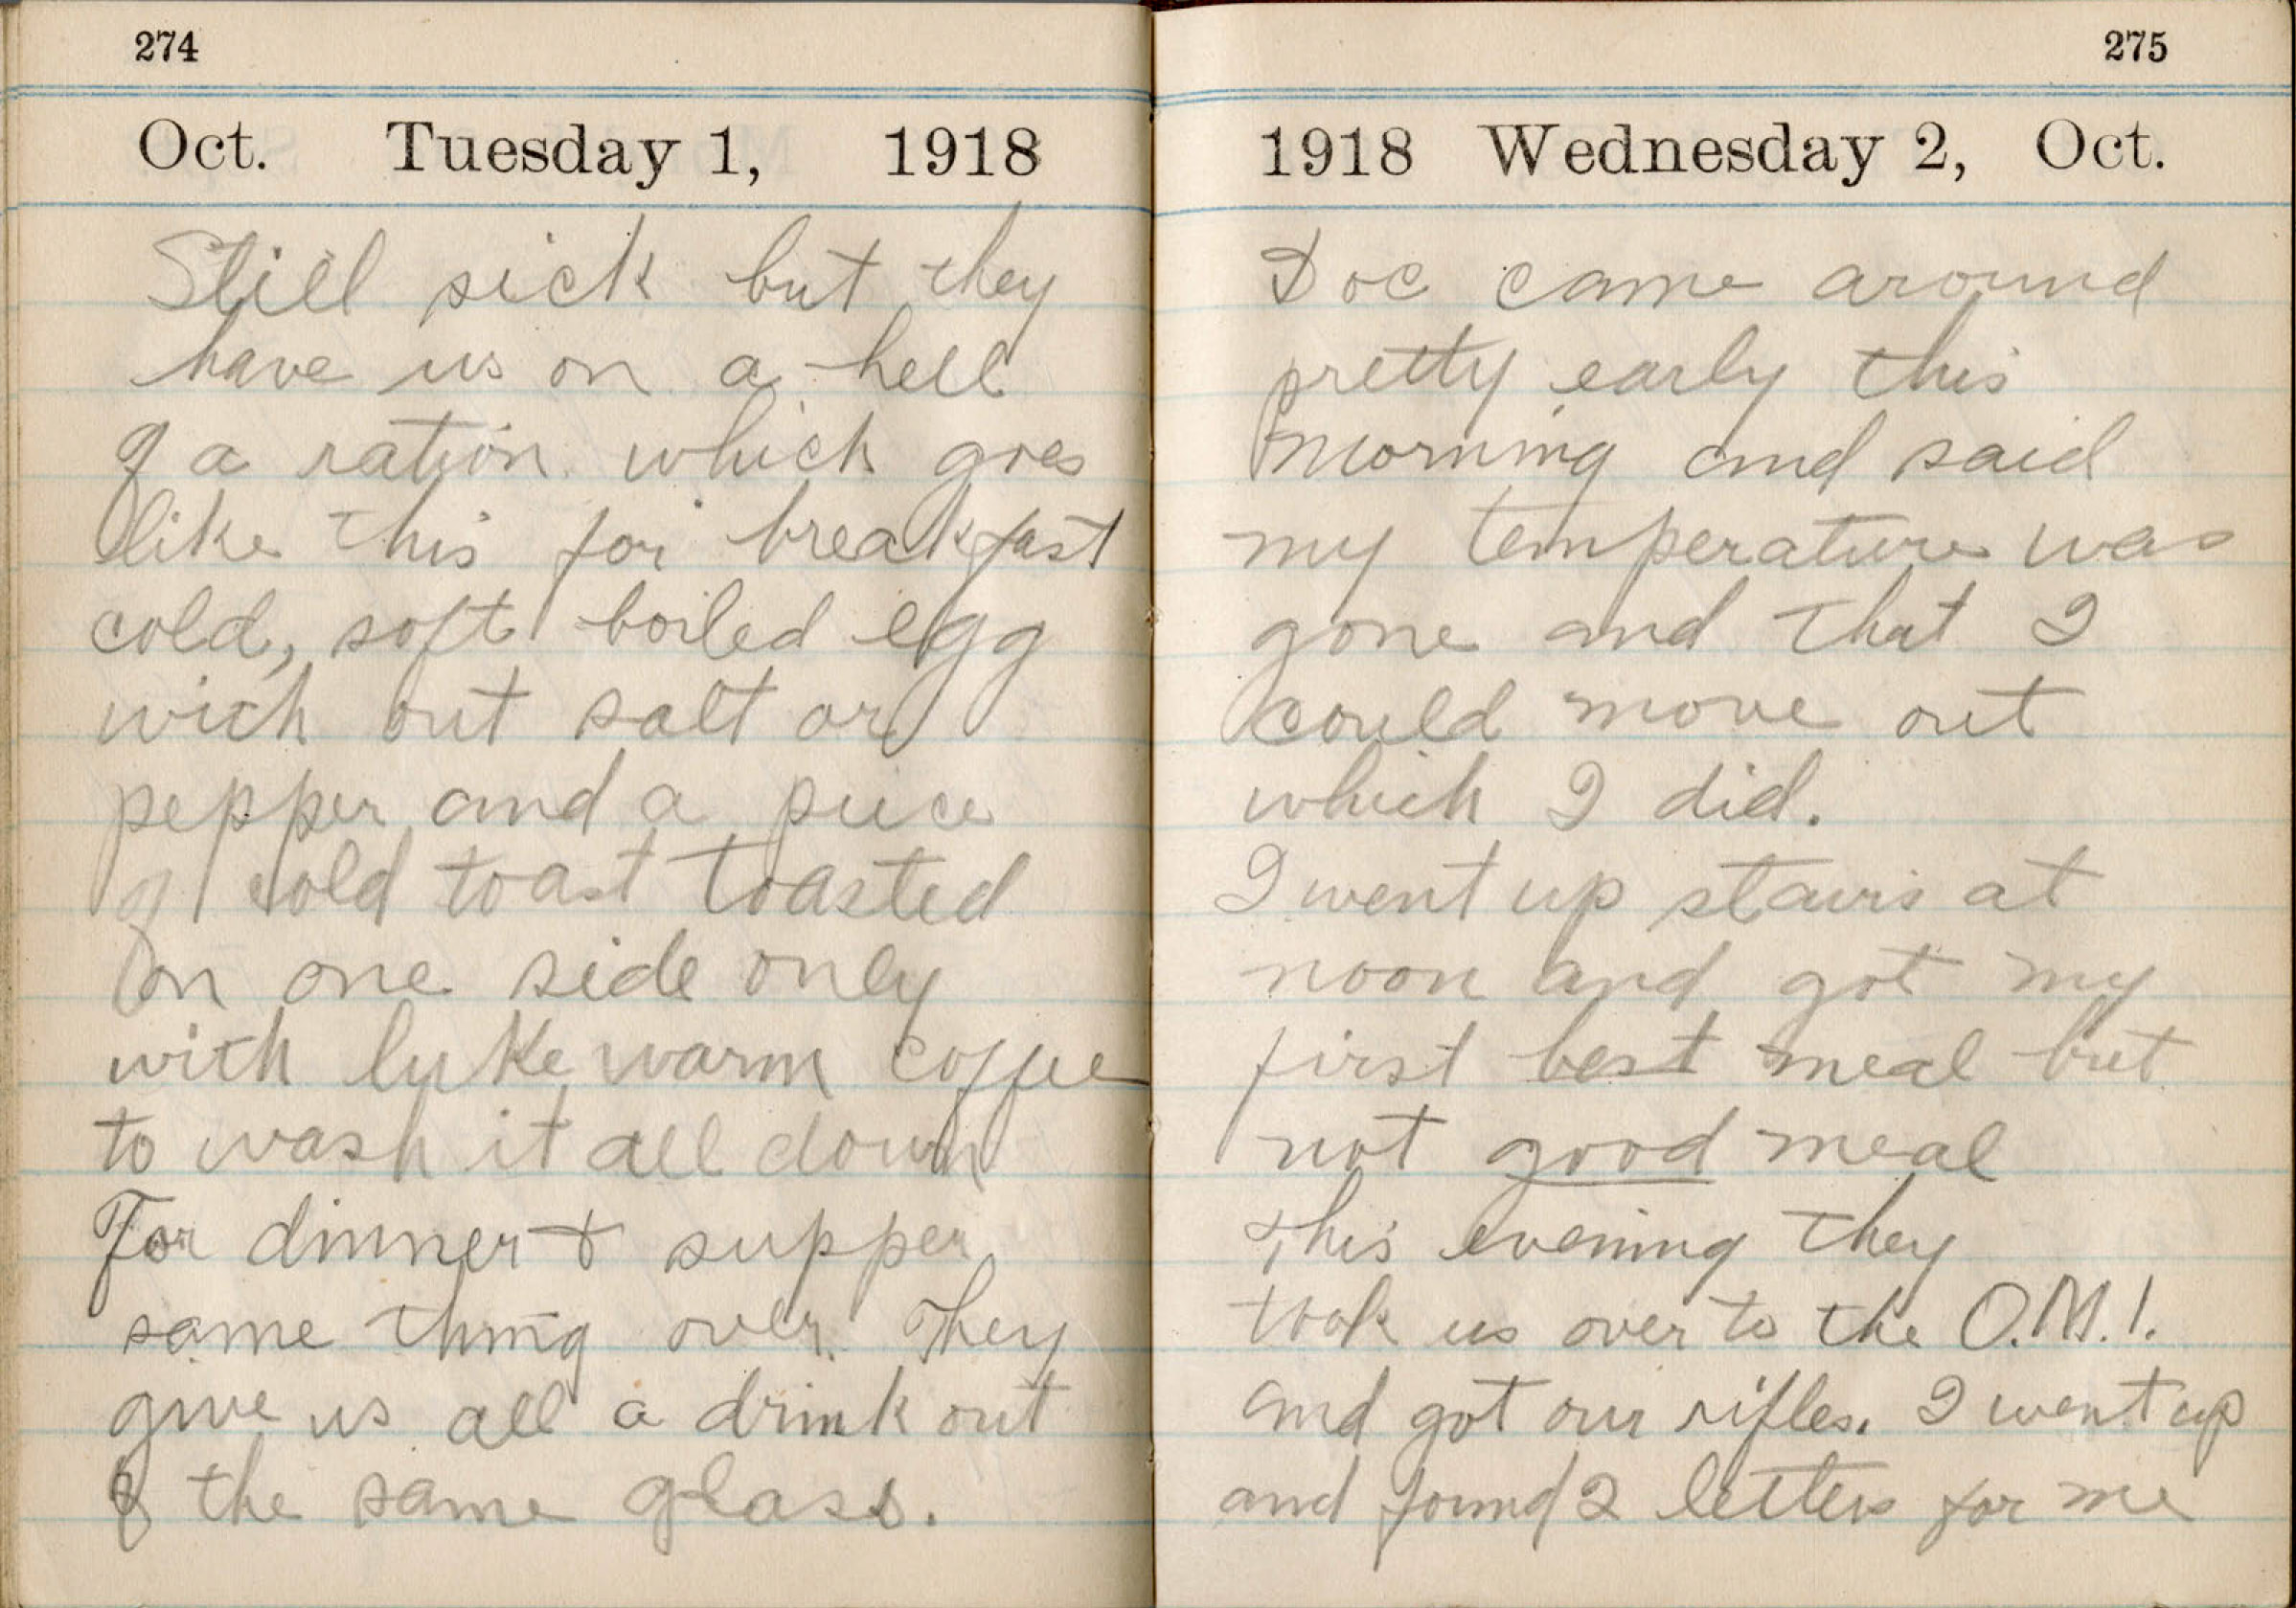 In an undated photo from Wright State University, pages from the diary of Donald McKinney, a farmer who kept a diary of his illness during the 1918 influenza epidemic.